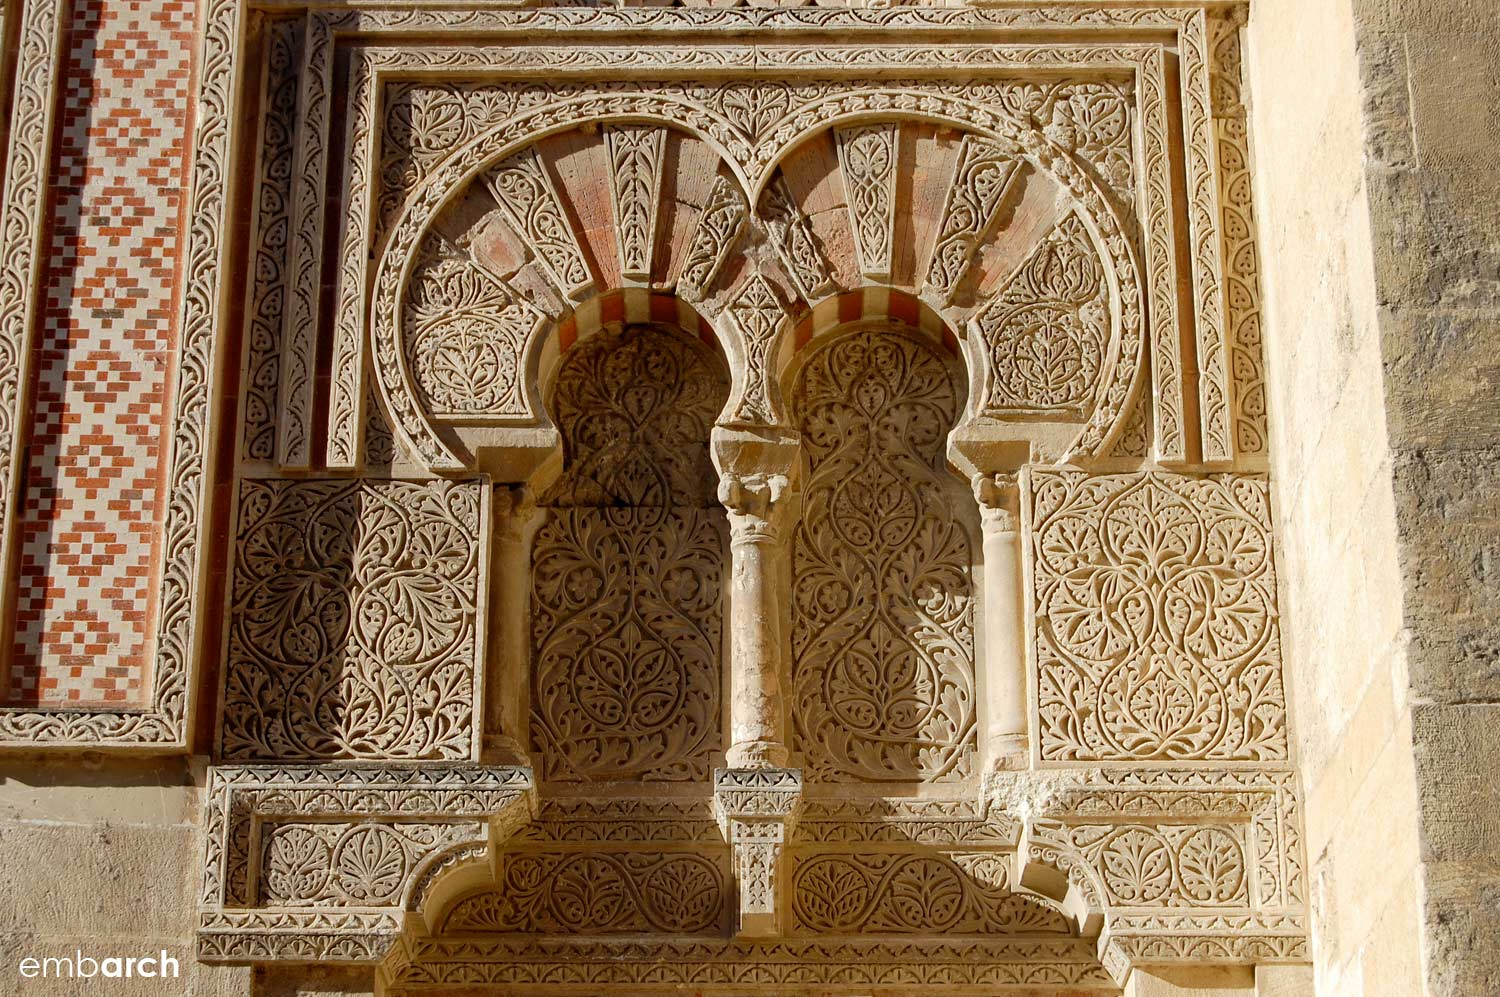 The Mosque-Cathedral of Cordoba - exterior detail